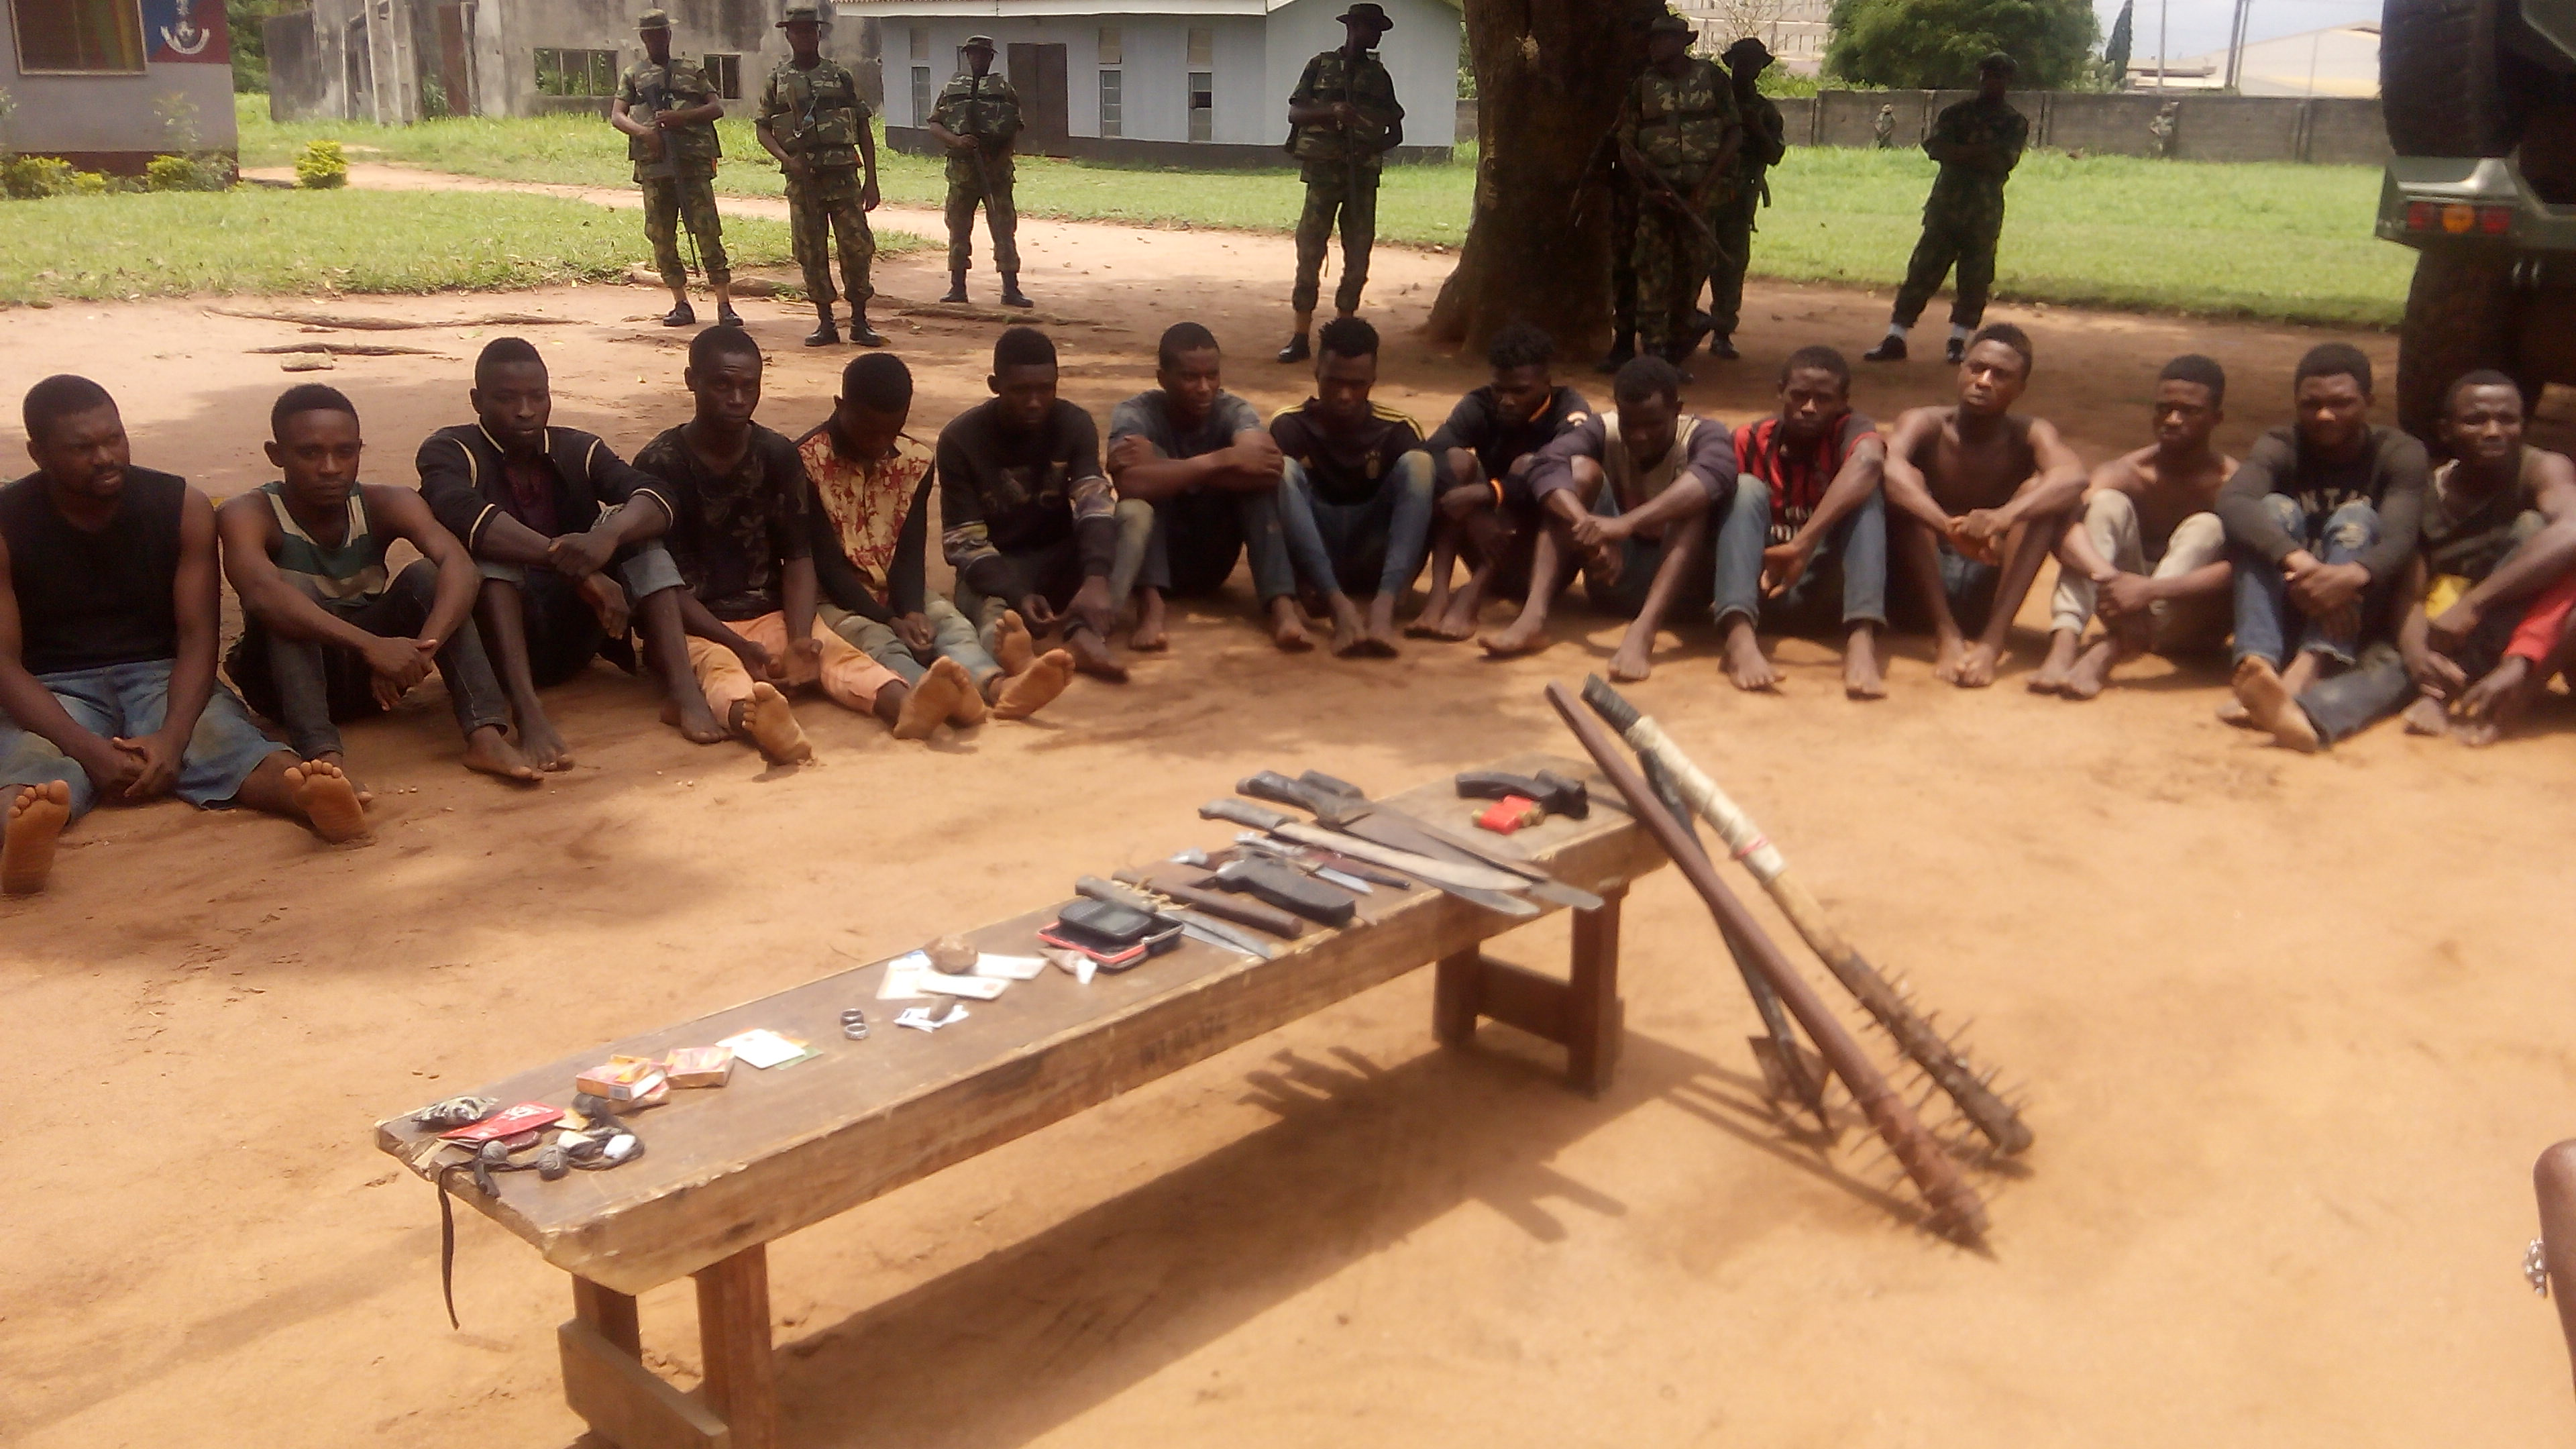 Army arrest 23 suspected cultists  during initiation in Lagos